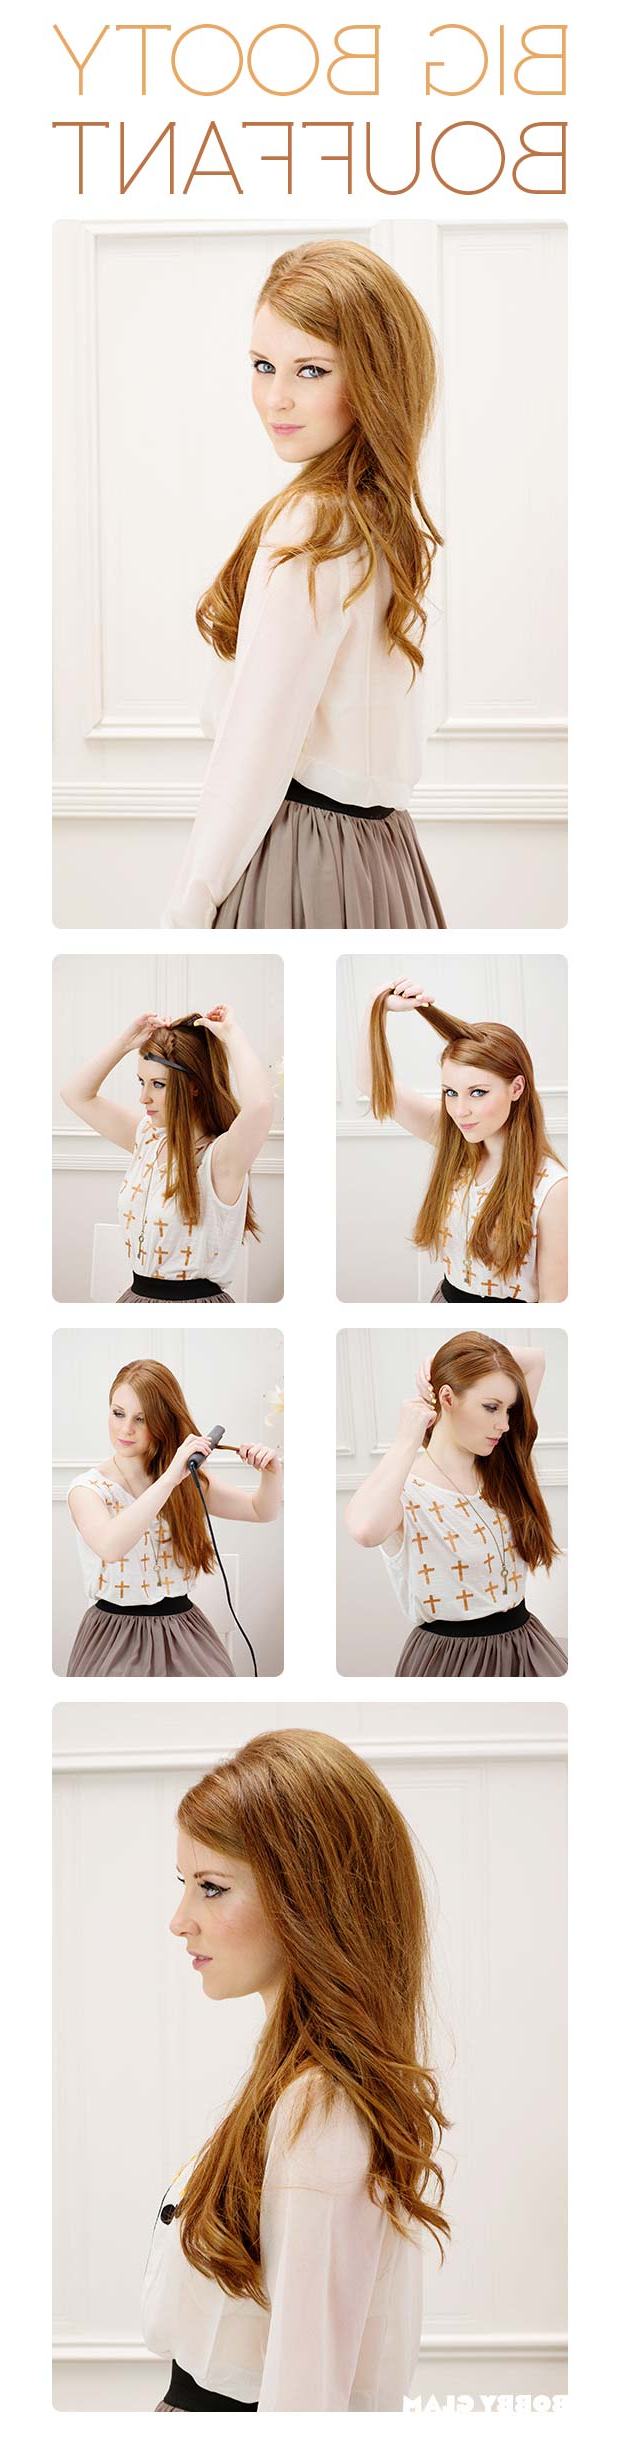 Craftionary Regarding Popular Braids And Bouffant Hairstyles (View 14 of 20)